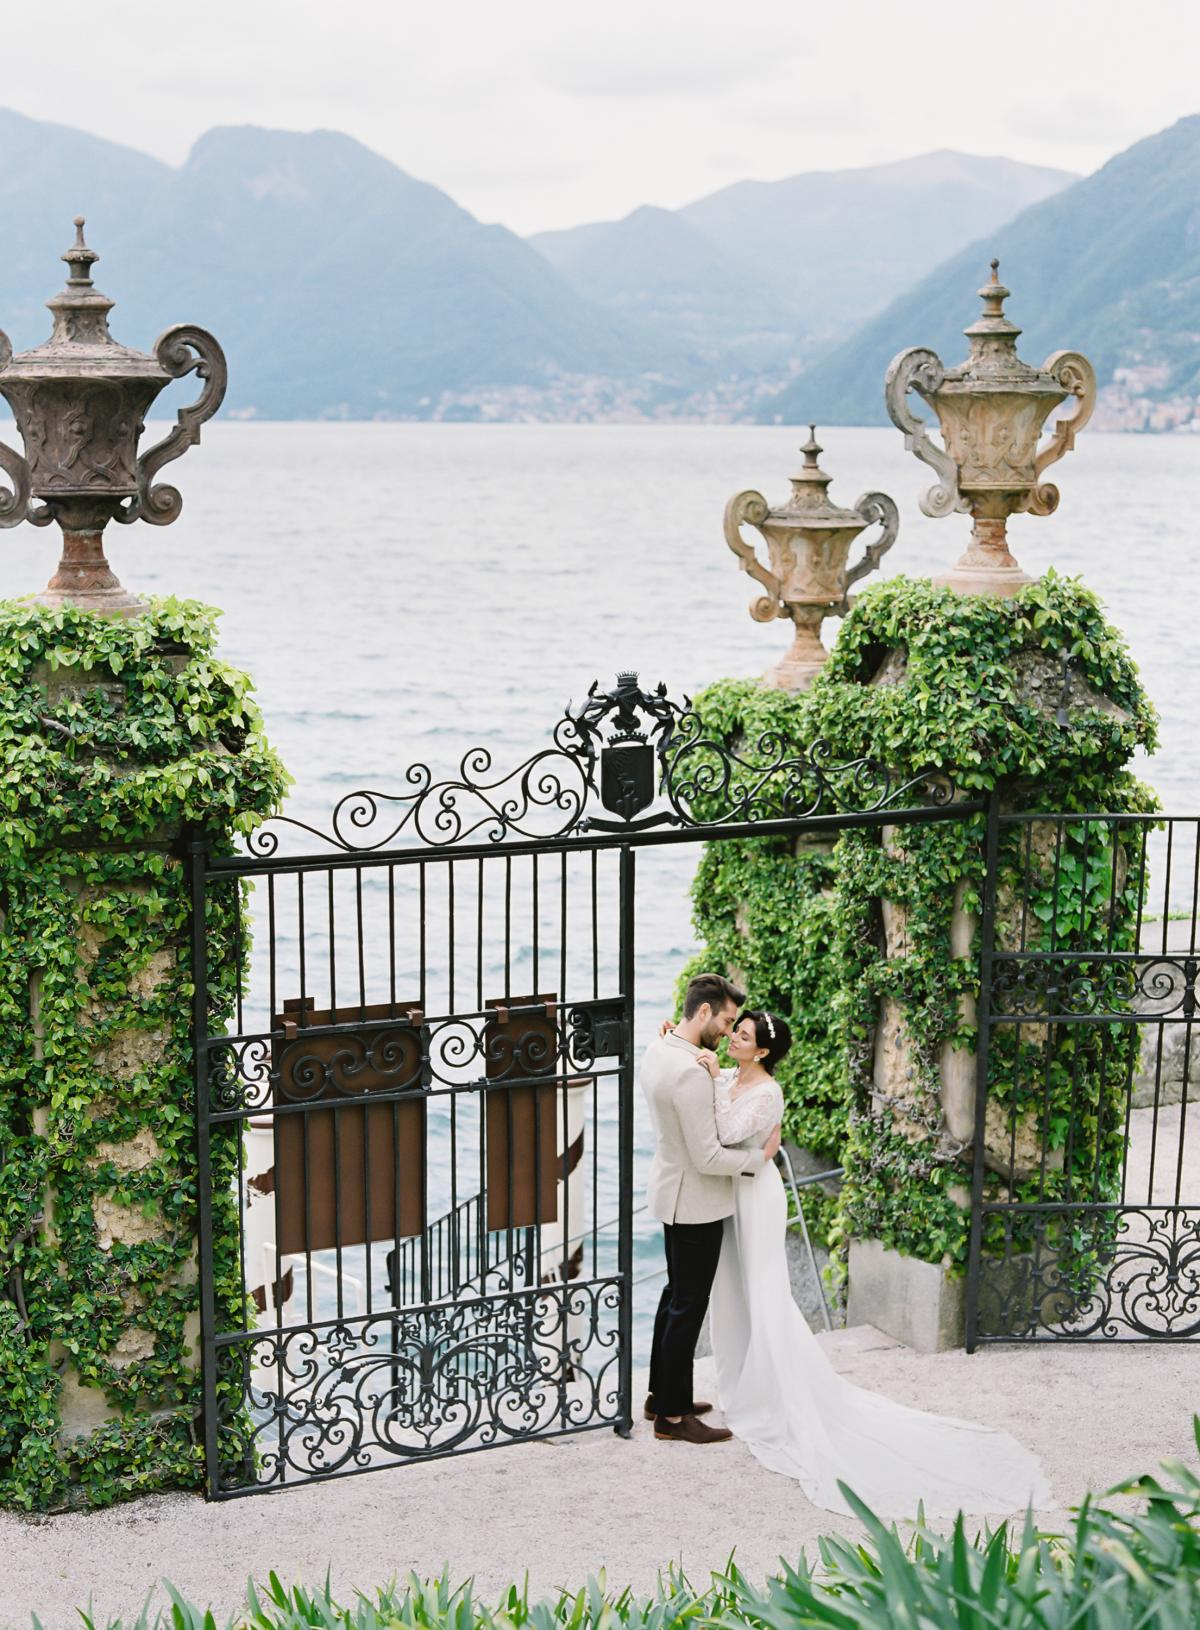 Lake Como Villa Del Balbianello Wedding Omalley Photographers 0044